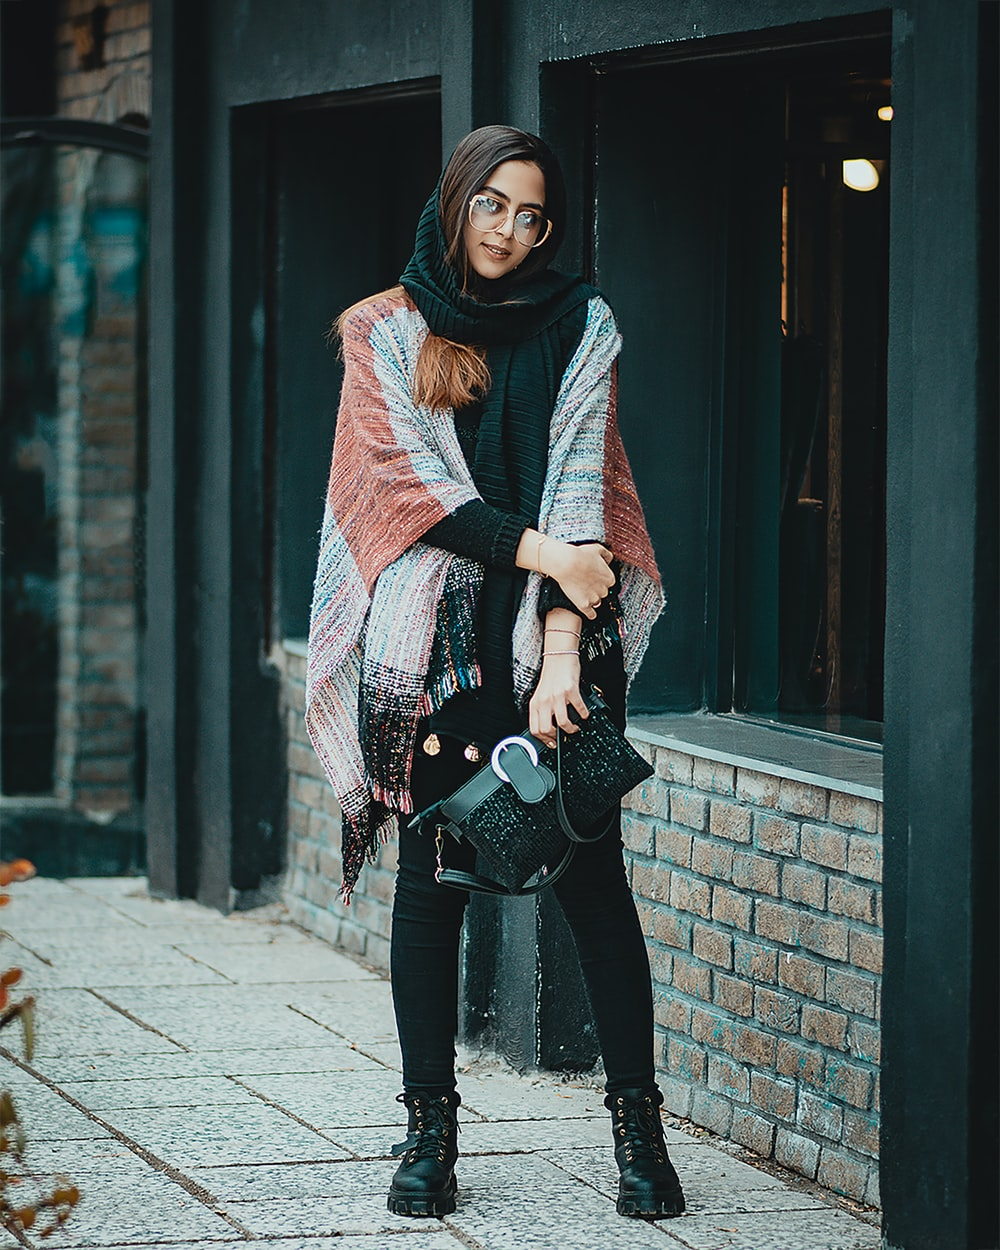 woman in black pants and red scarf standing on sidewalk during daytime